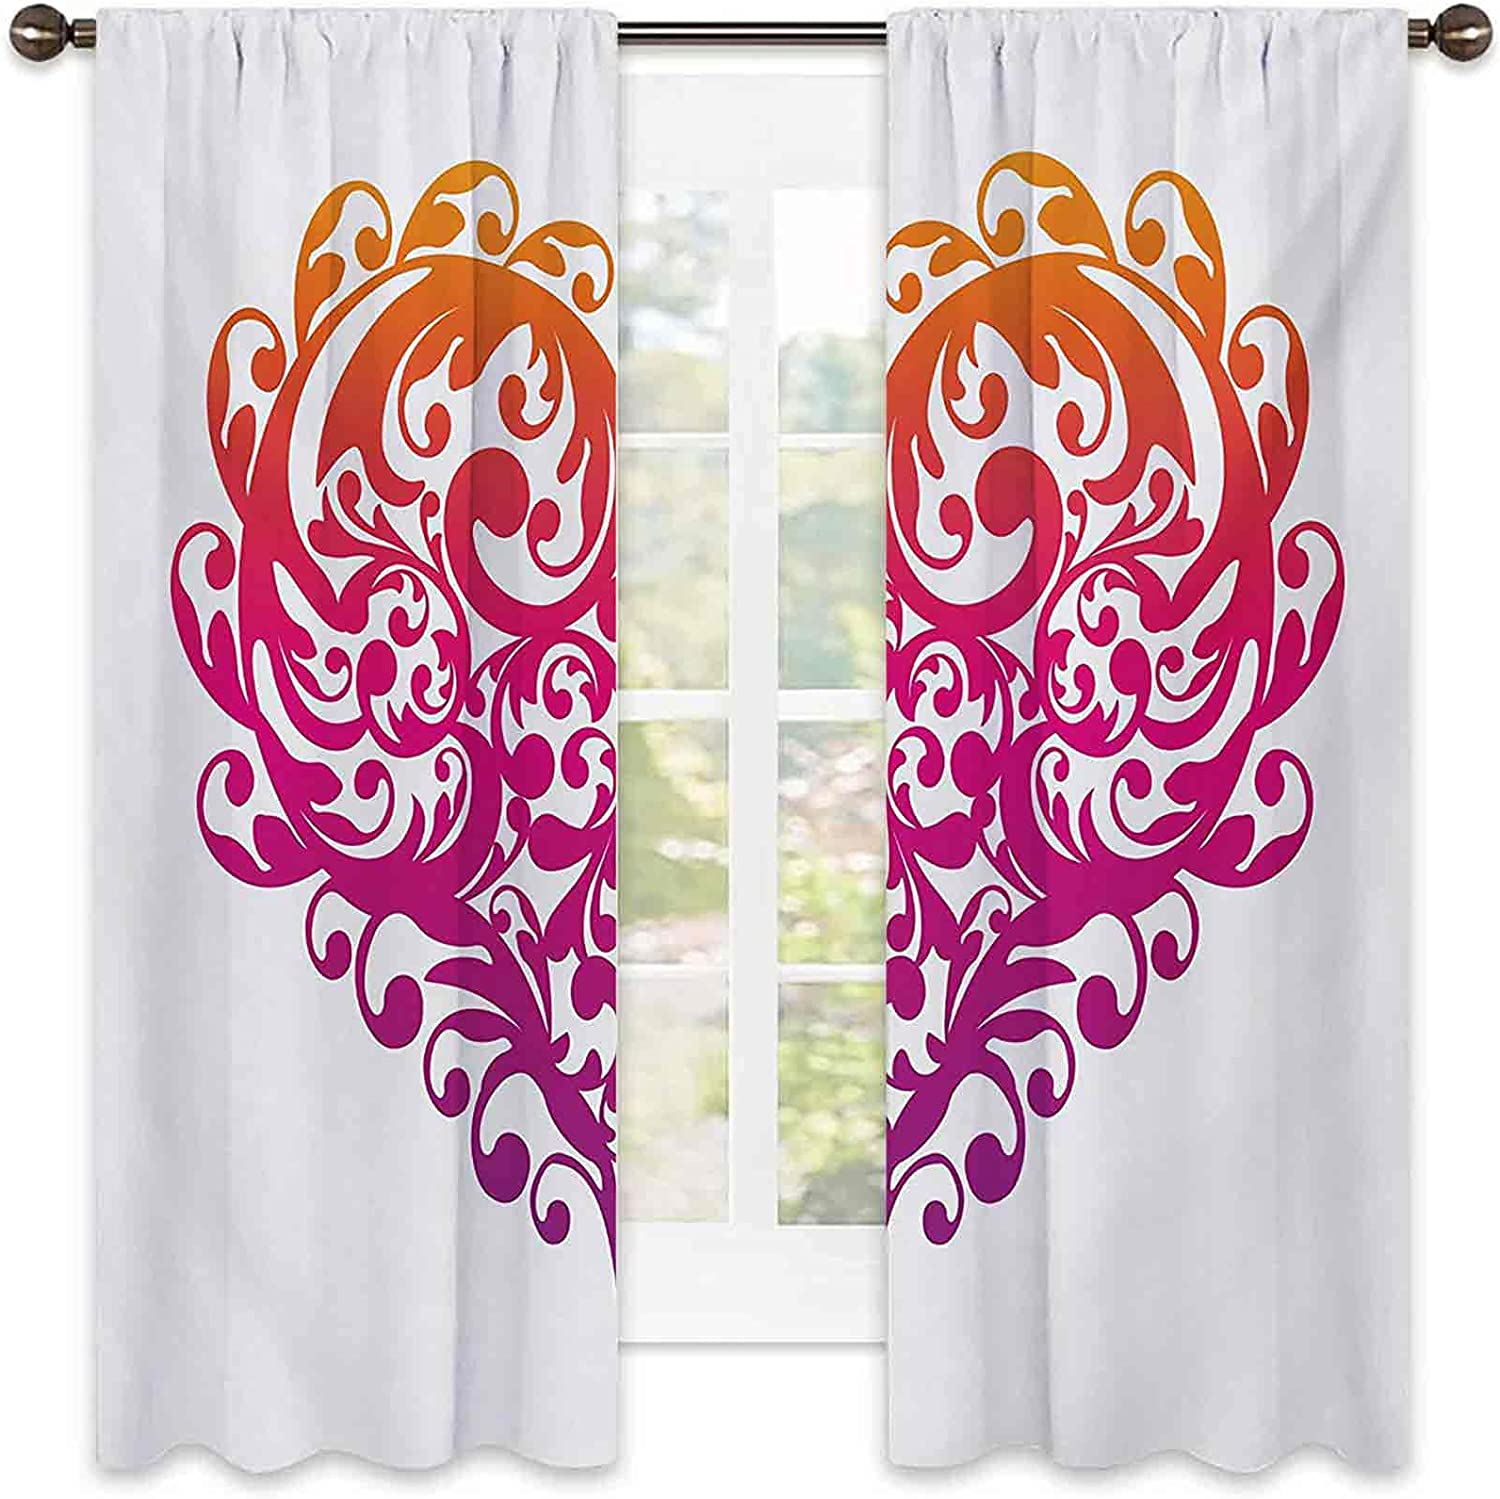 Shading Insulated Max 51% OFF 2021 spring and summer new Orange Pink Heart O with Abstract Curtain